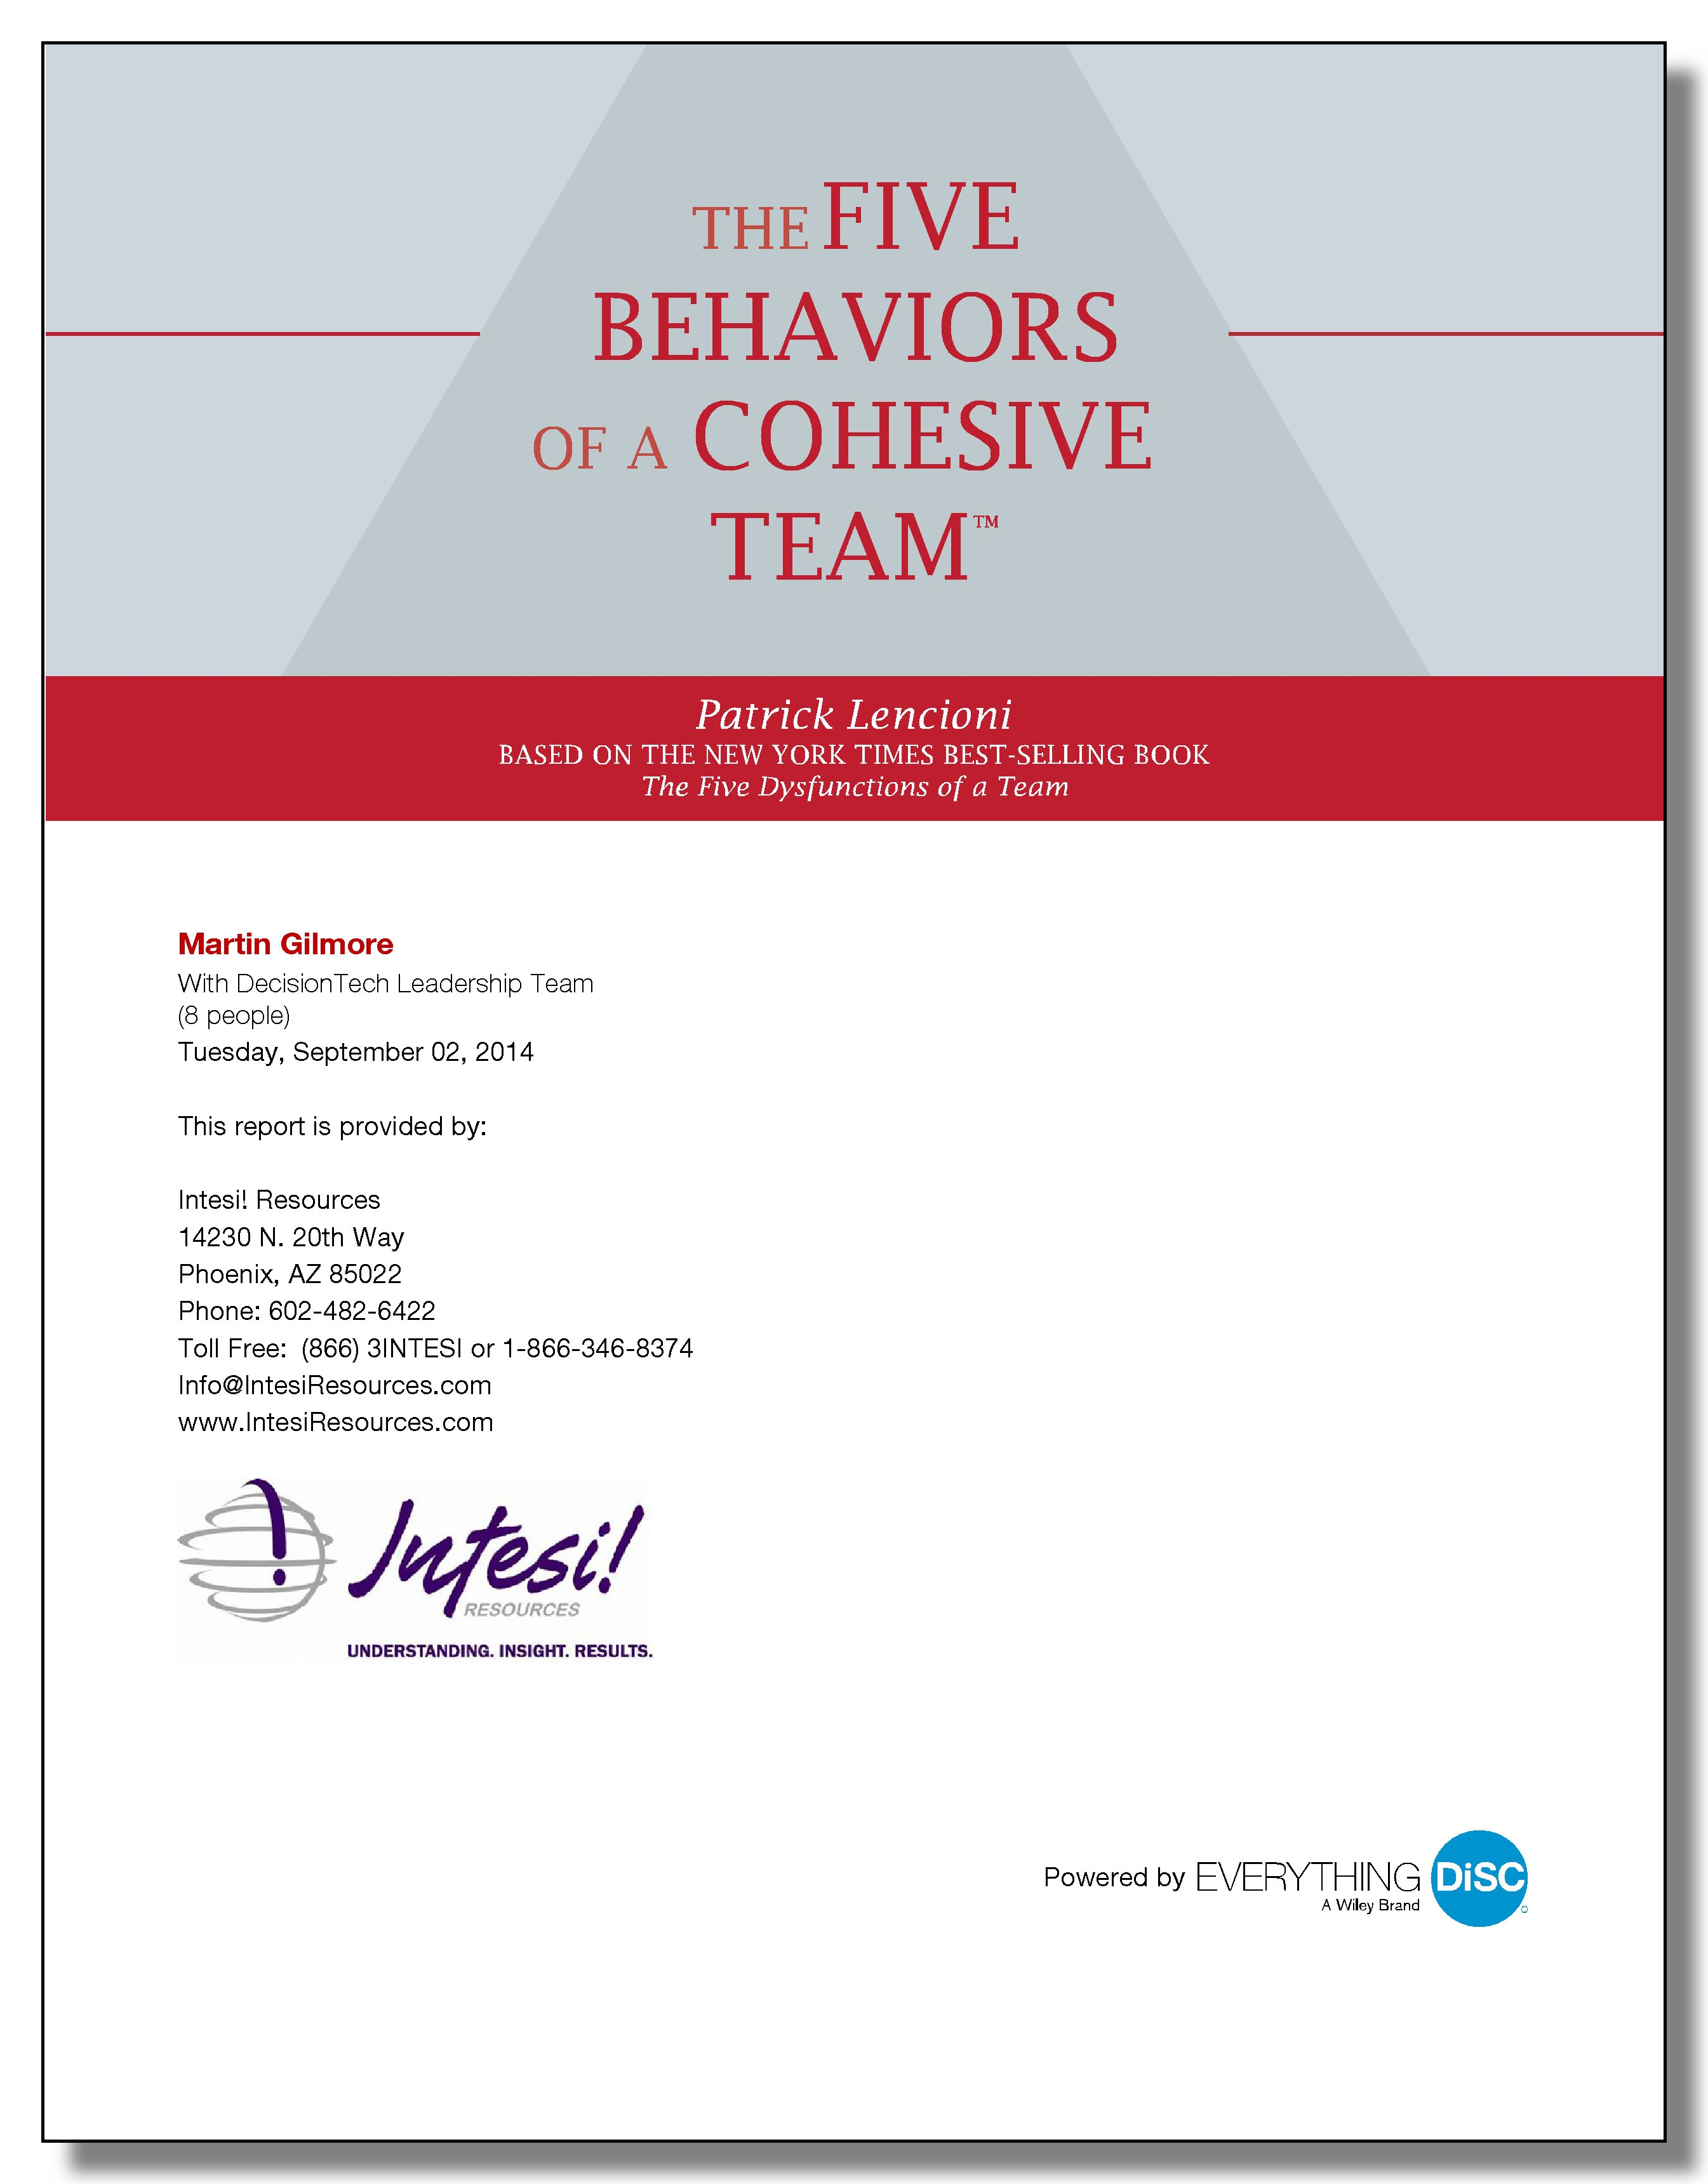 Five Behaviors Individual Sample Report